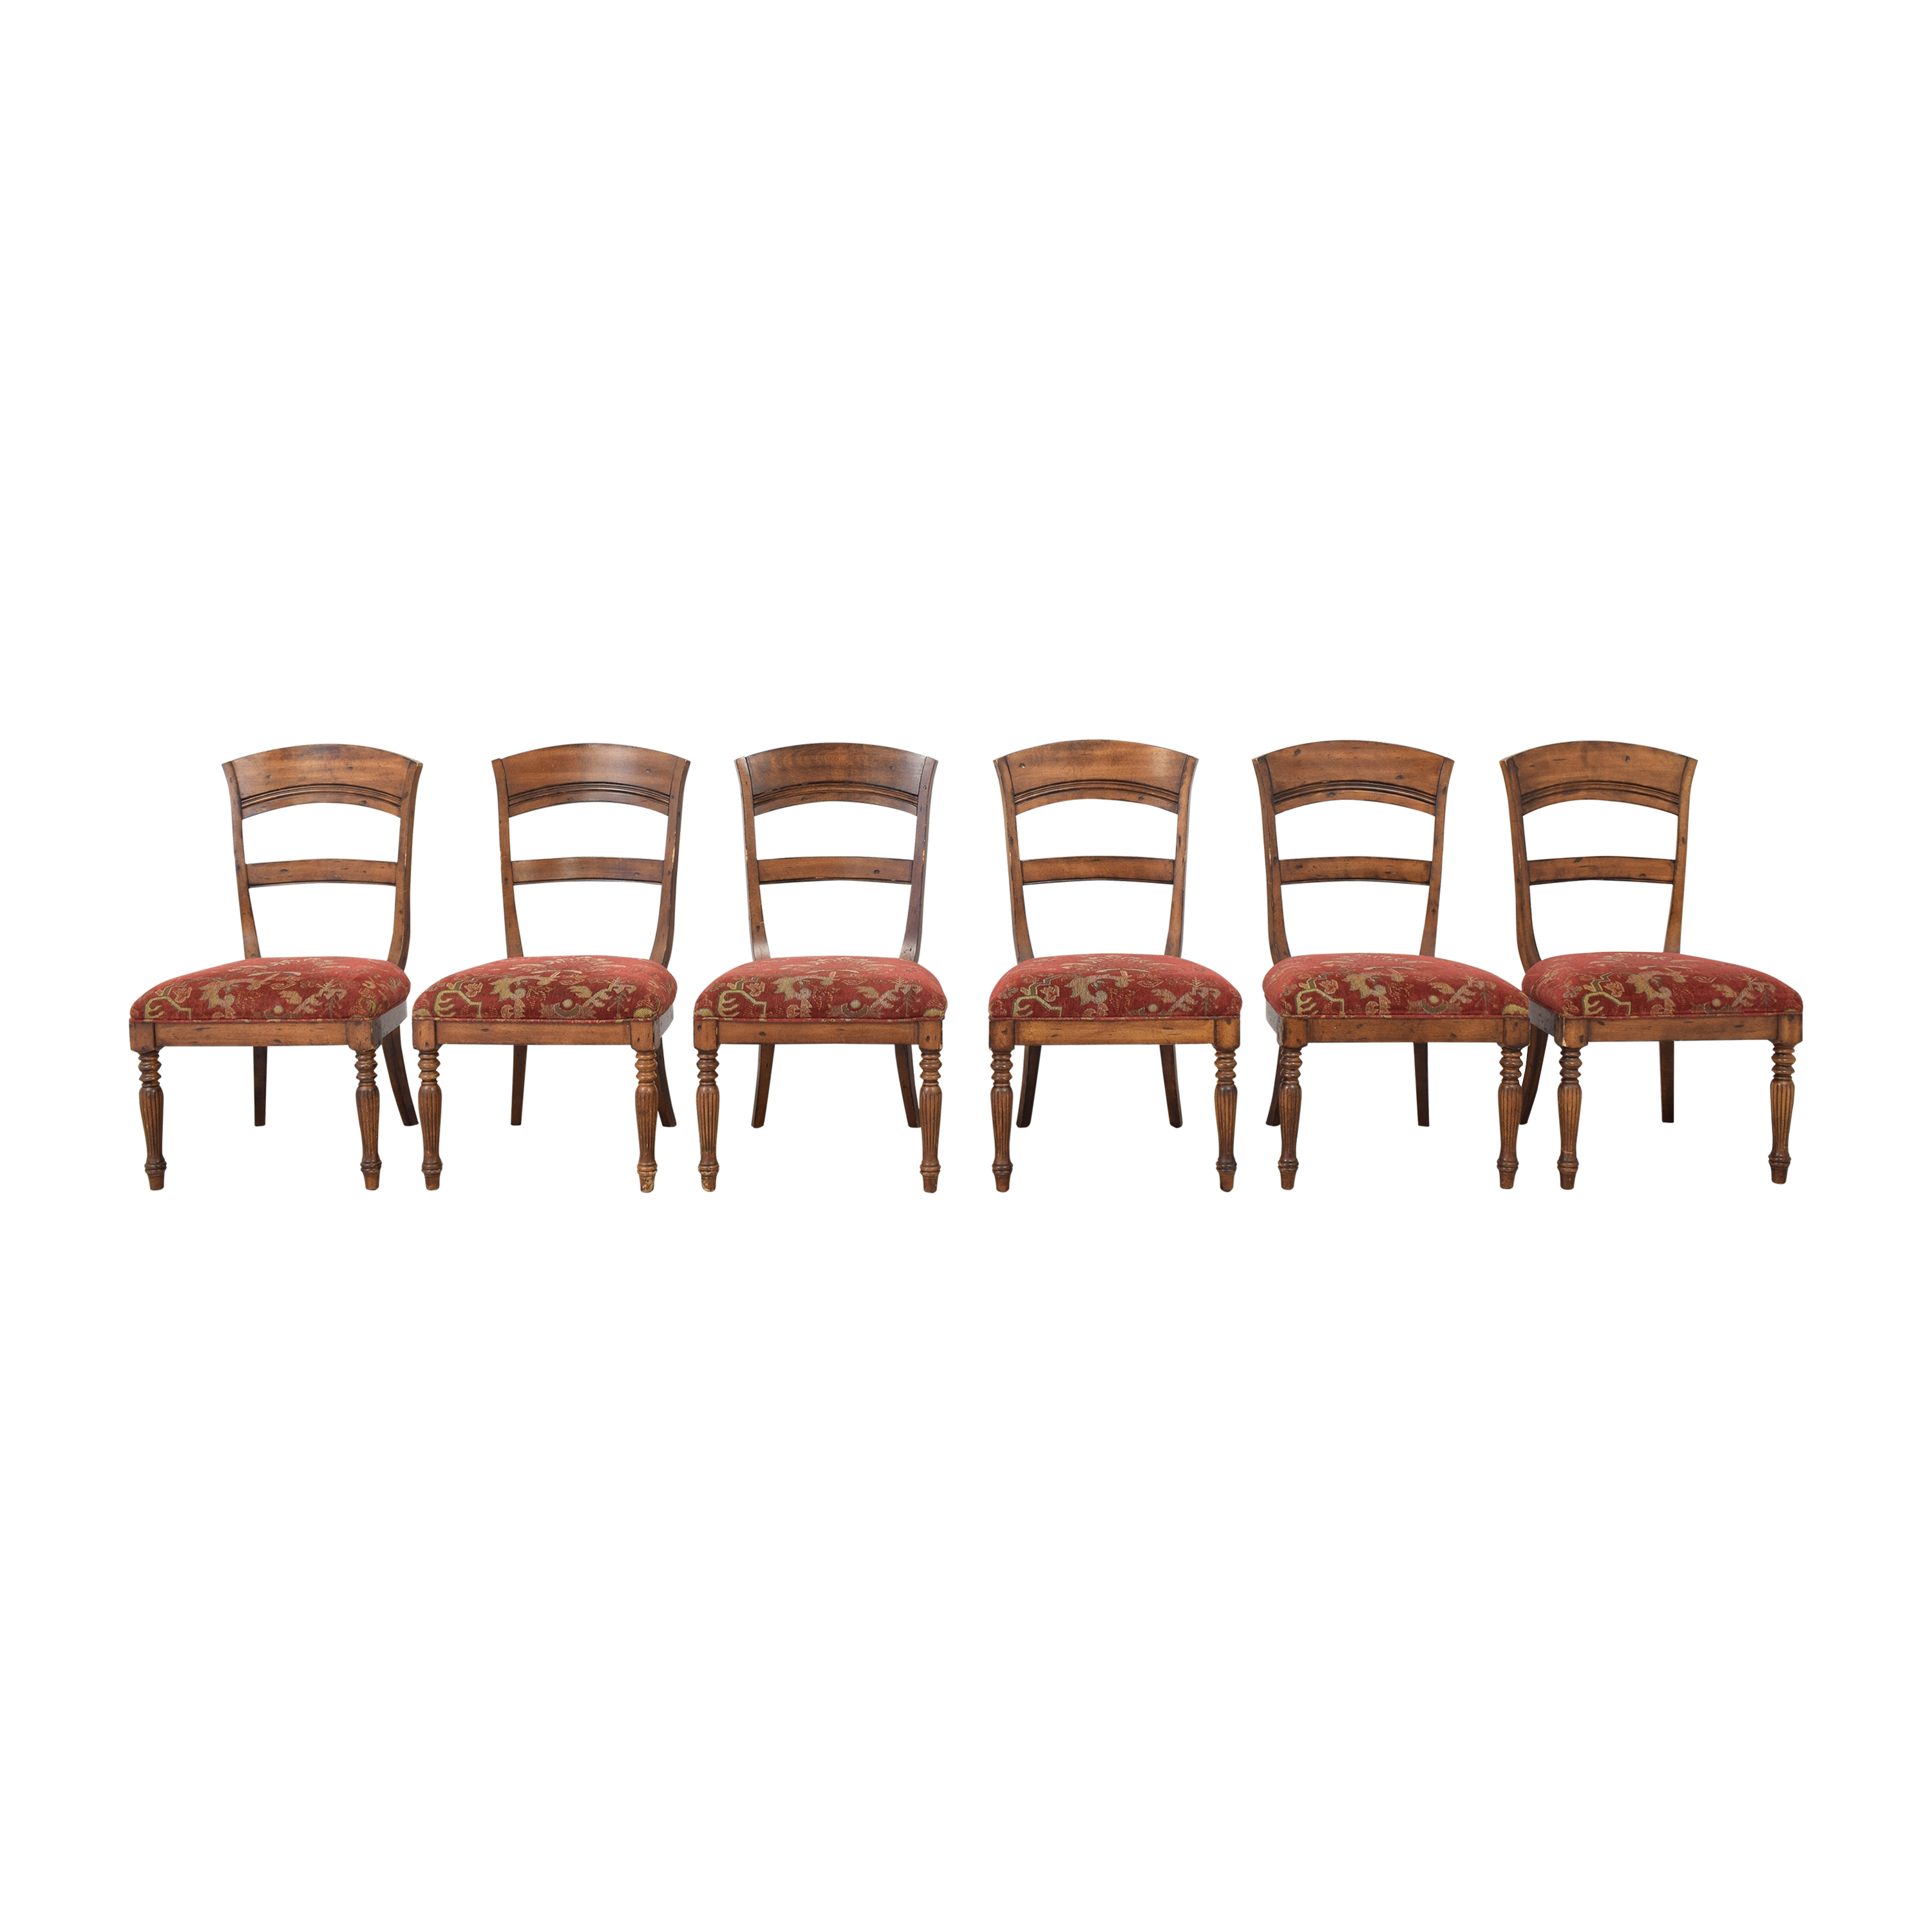 Harden Harden Upholstered Side Dining Chairs for sale